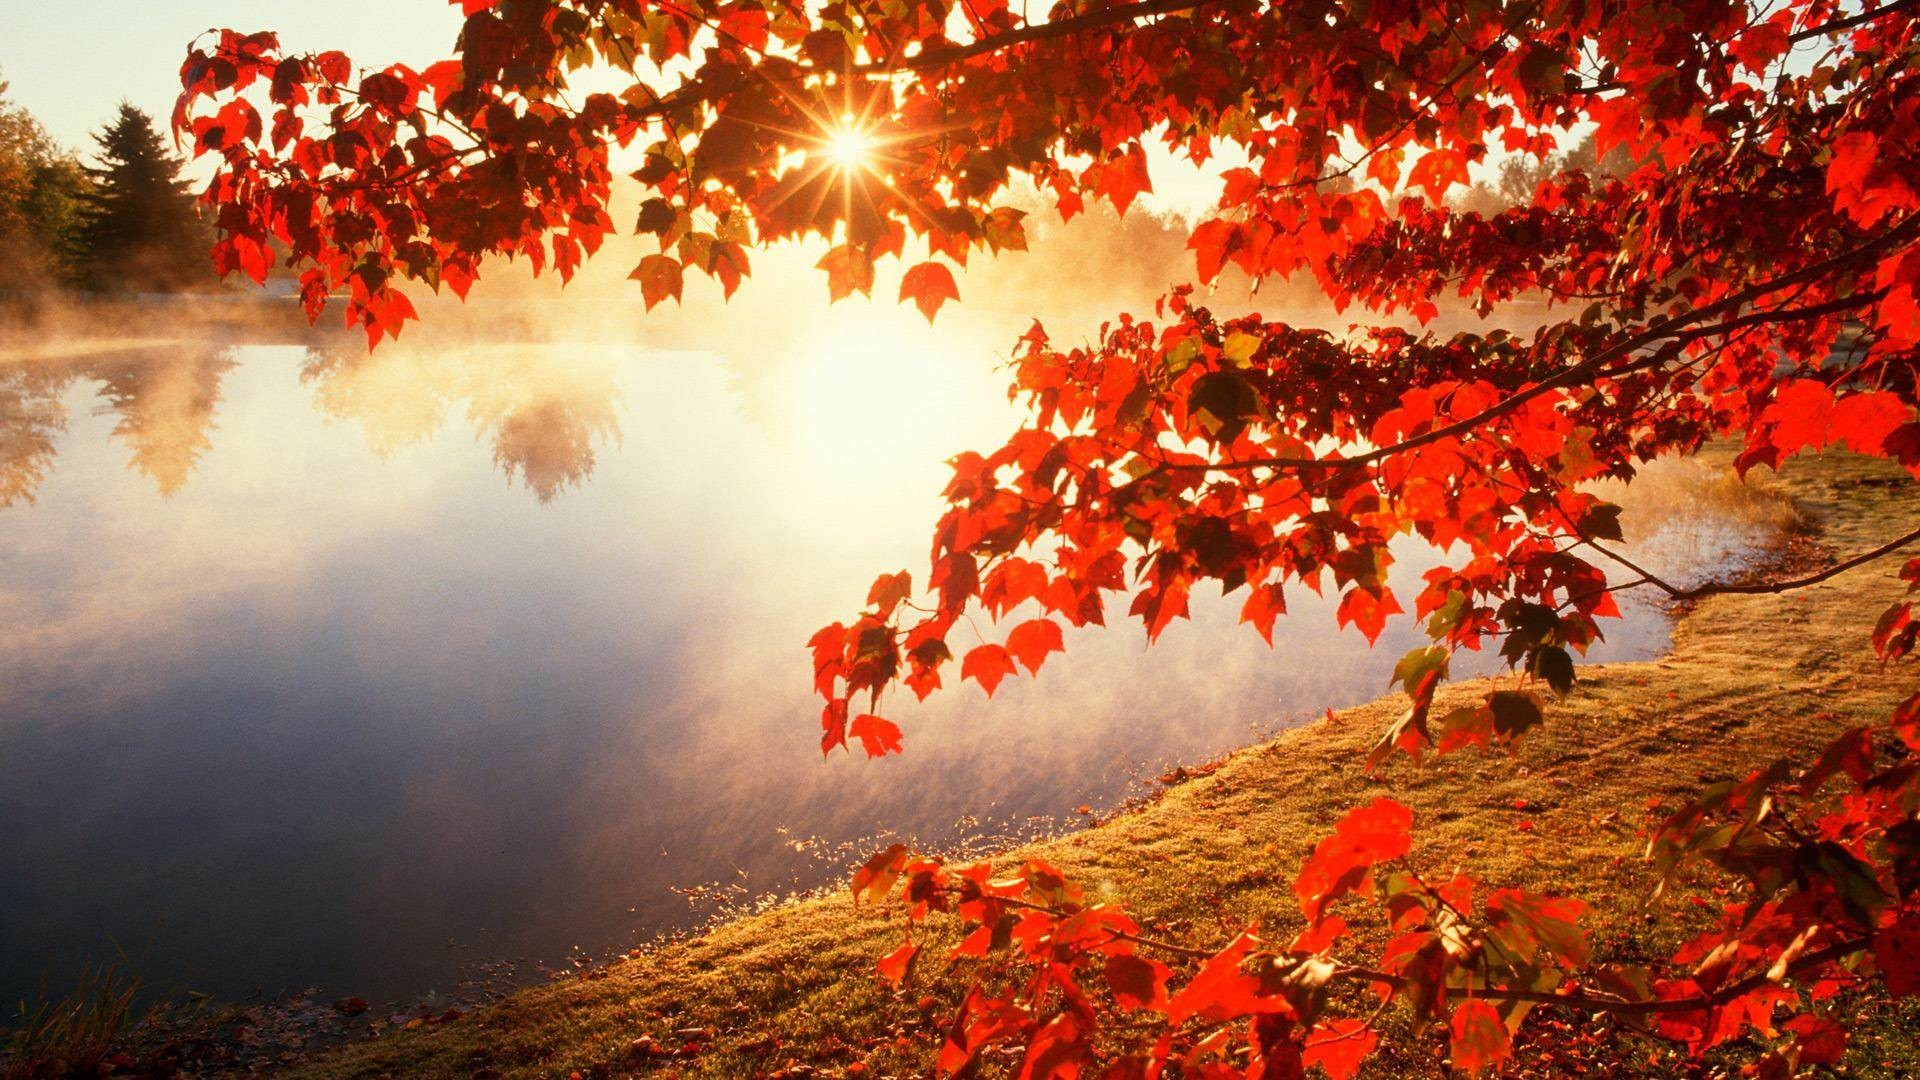 Fall Background Pictures 62 images